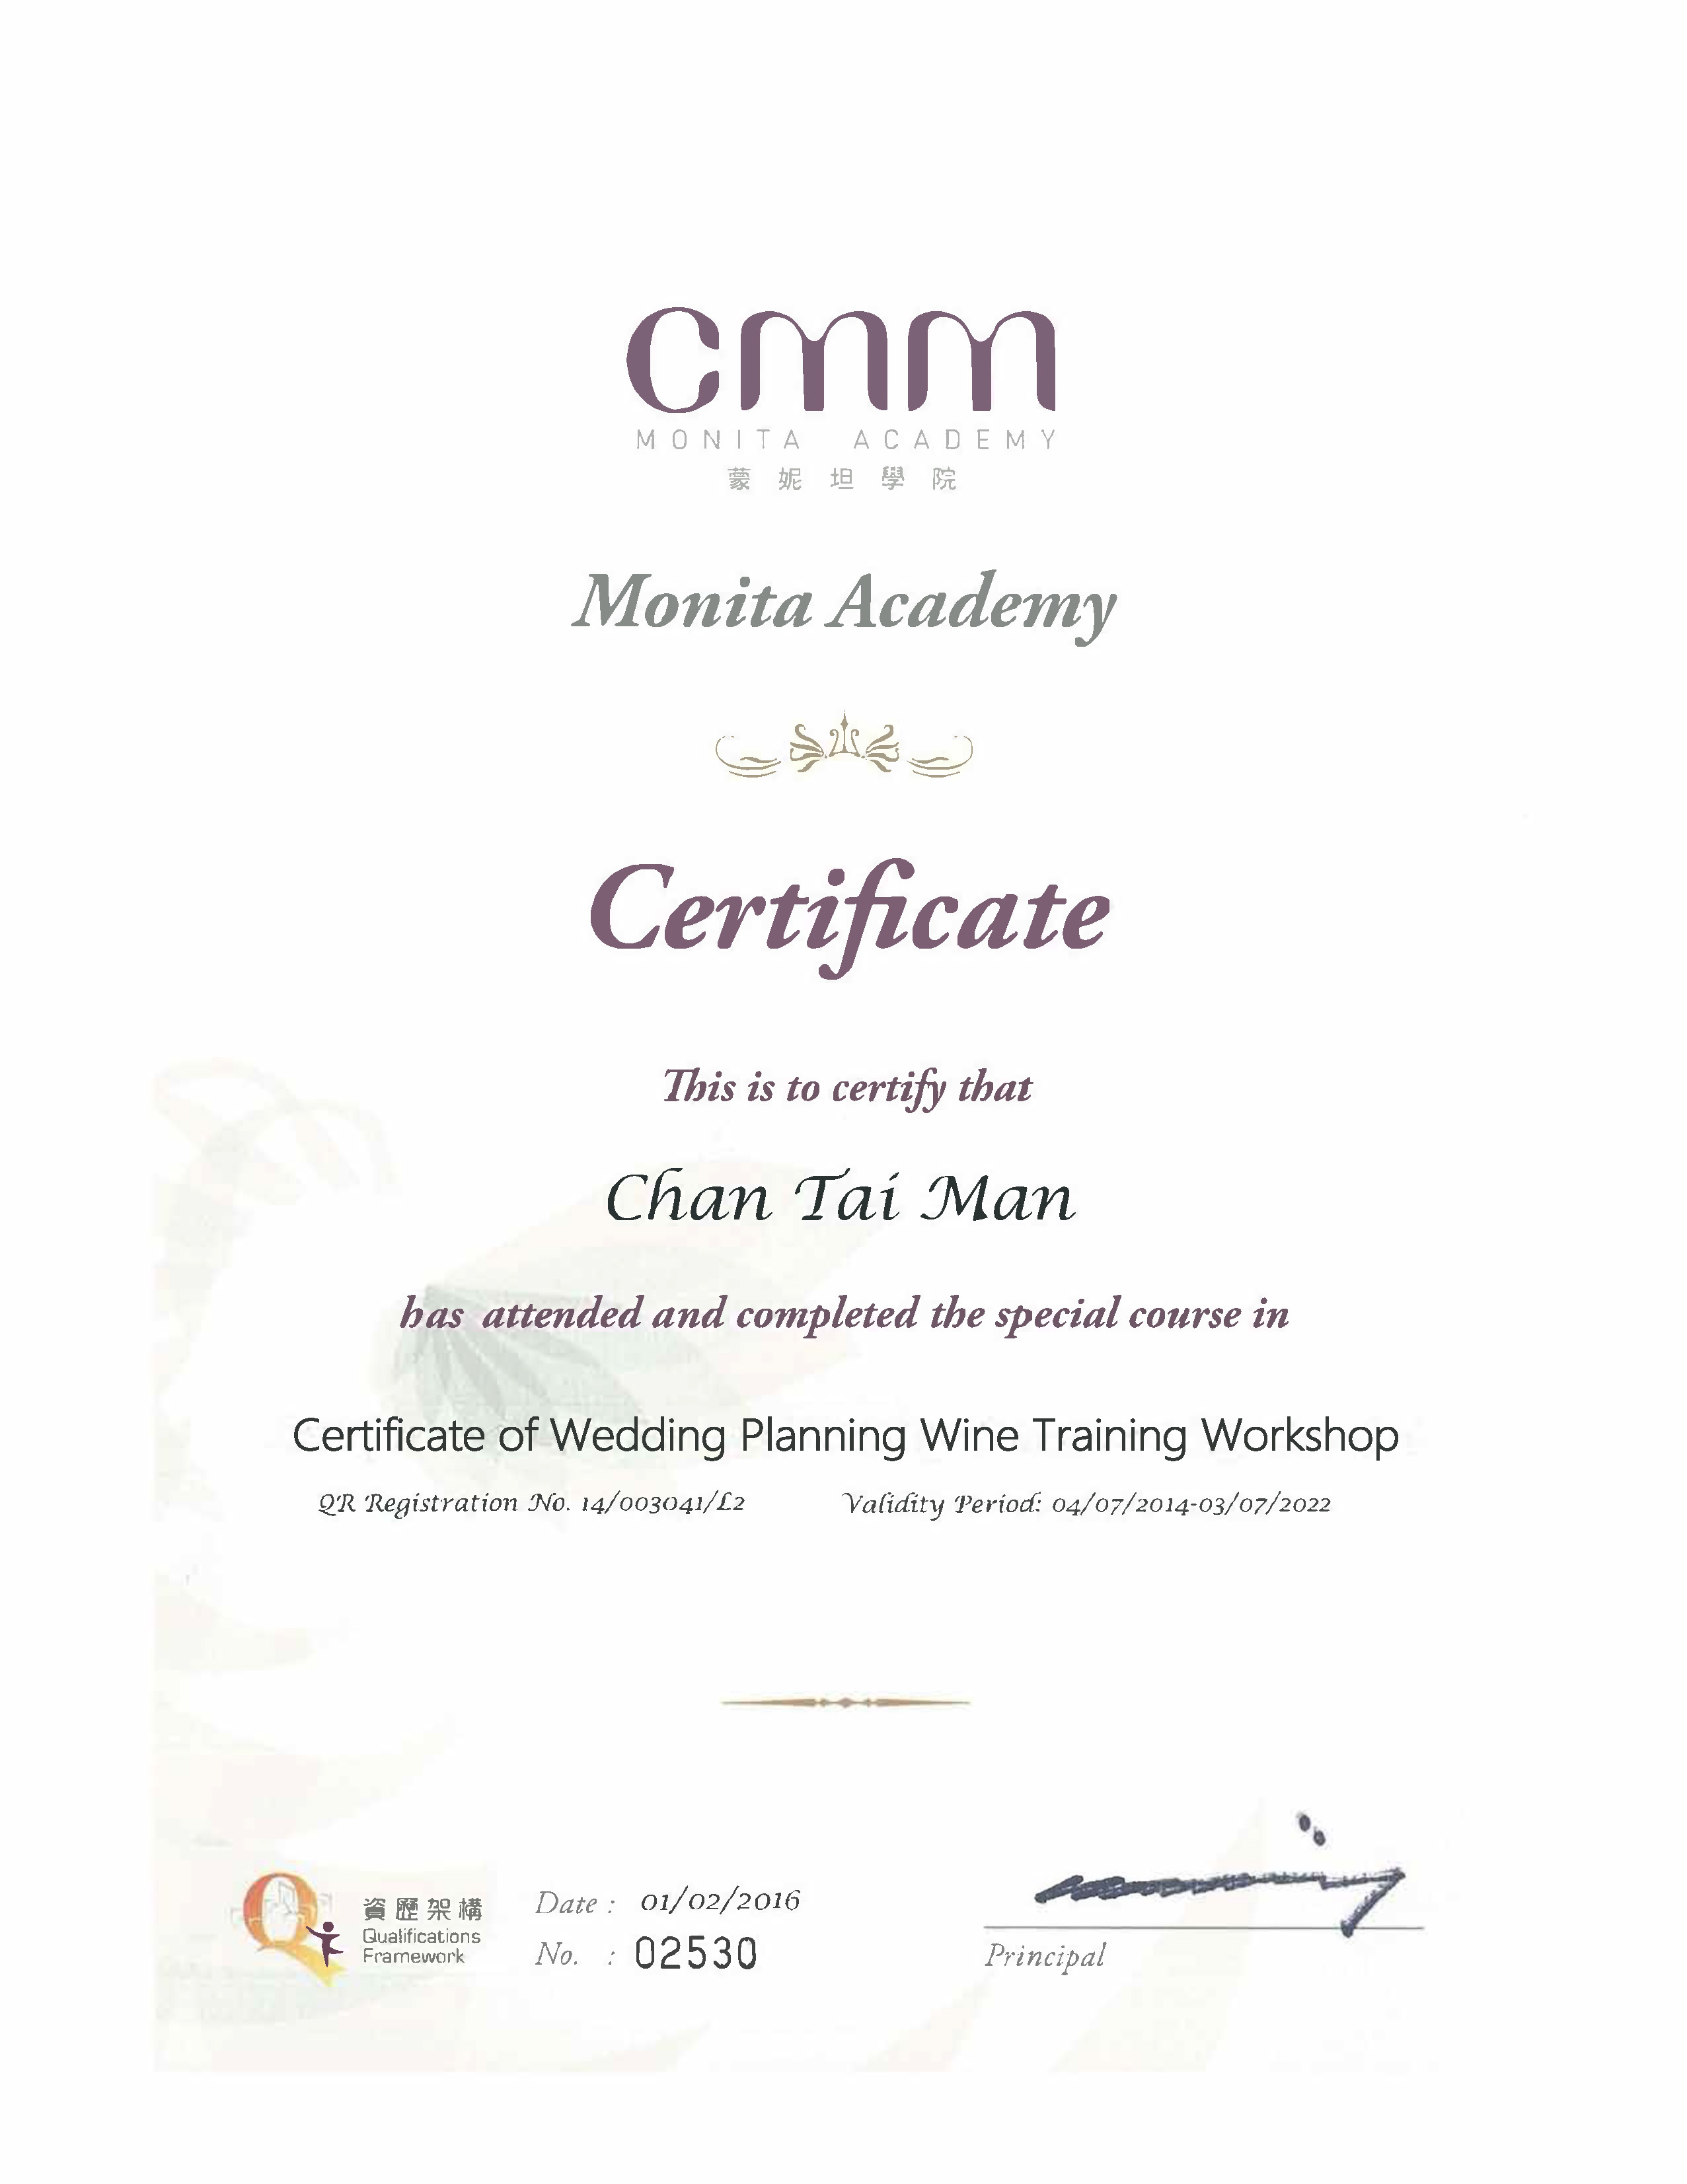 2.CMM Diploma in Event Management 29-11-2019 at 11.24.55_Page_2